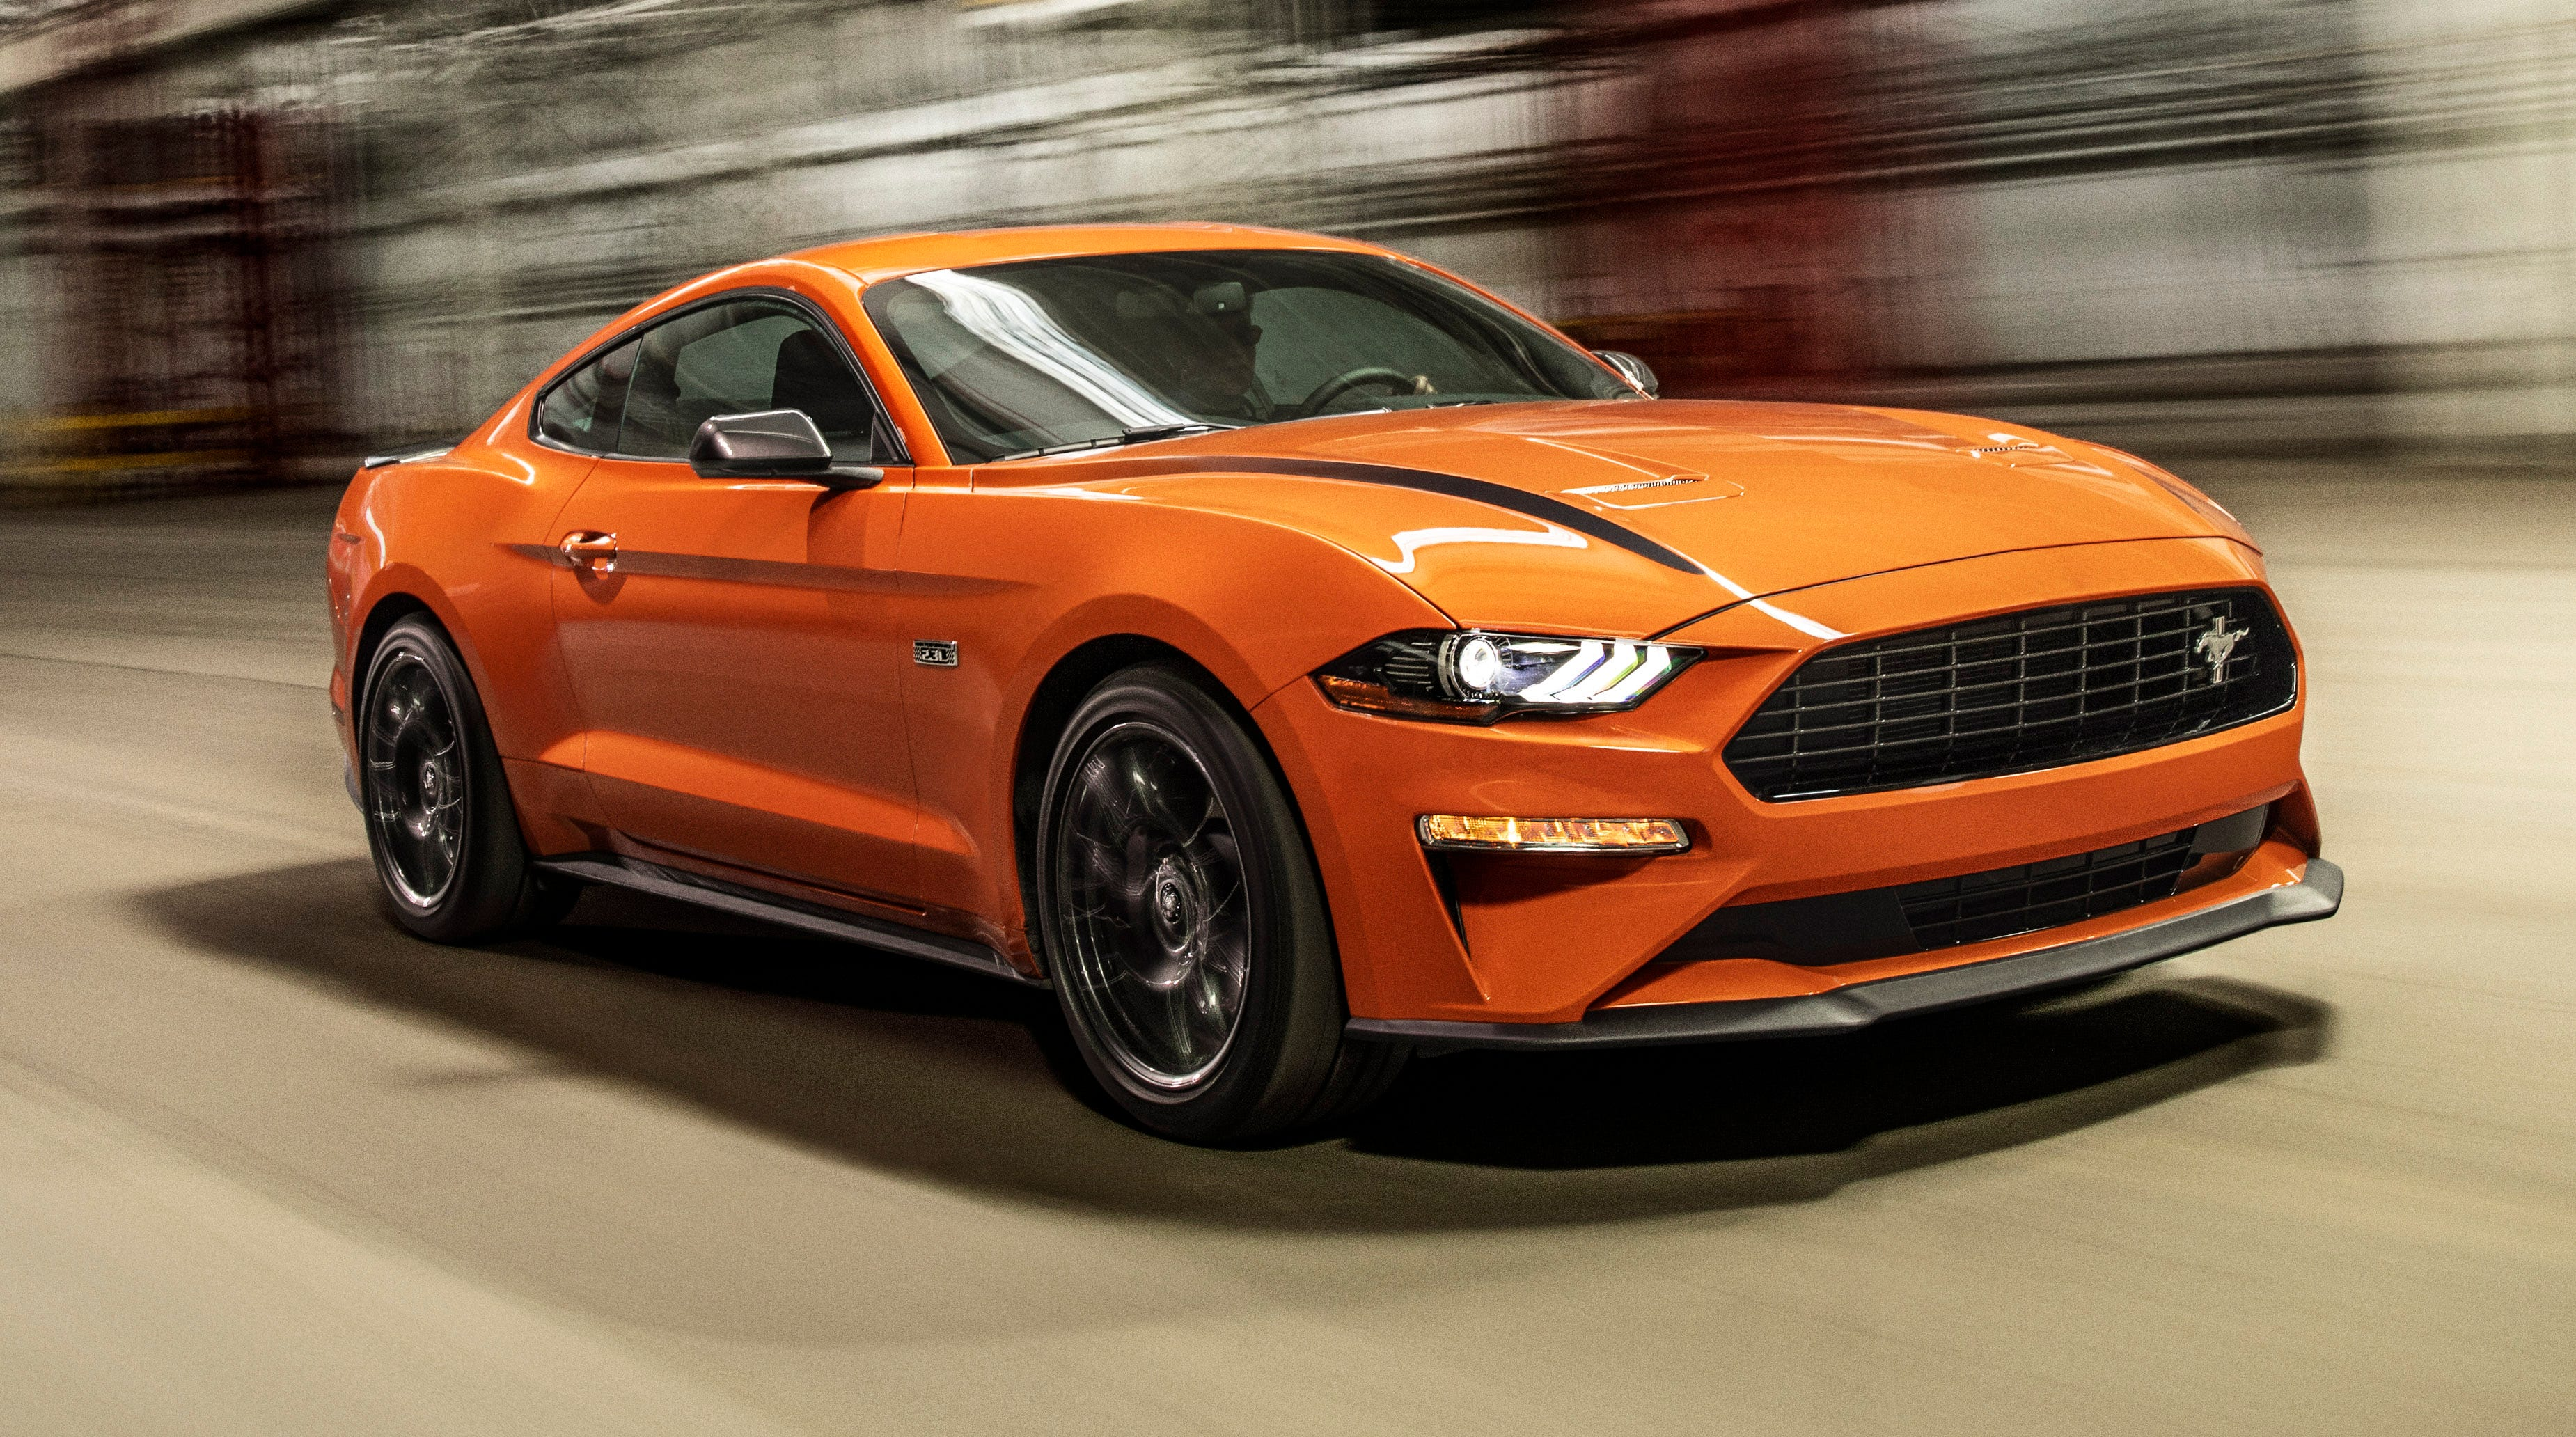 The Ford Mustang Ecoboost High Performance